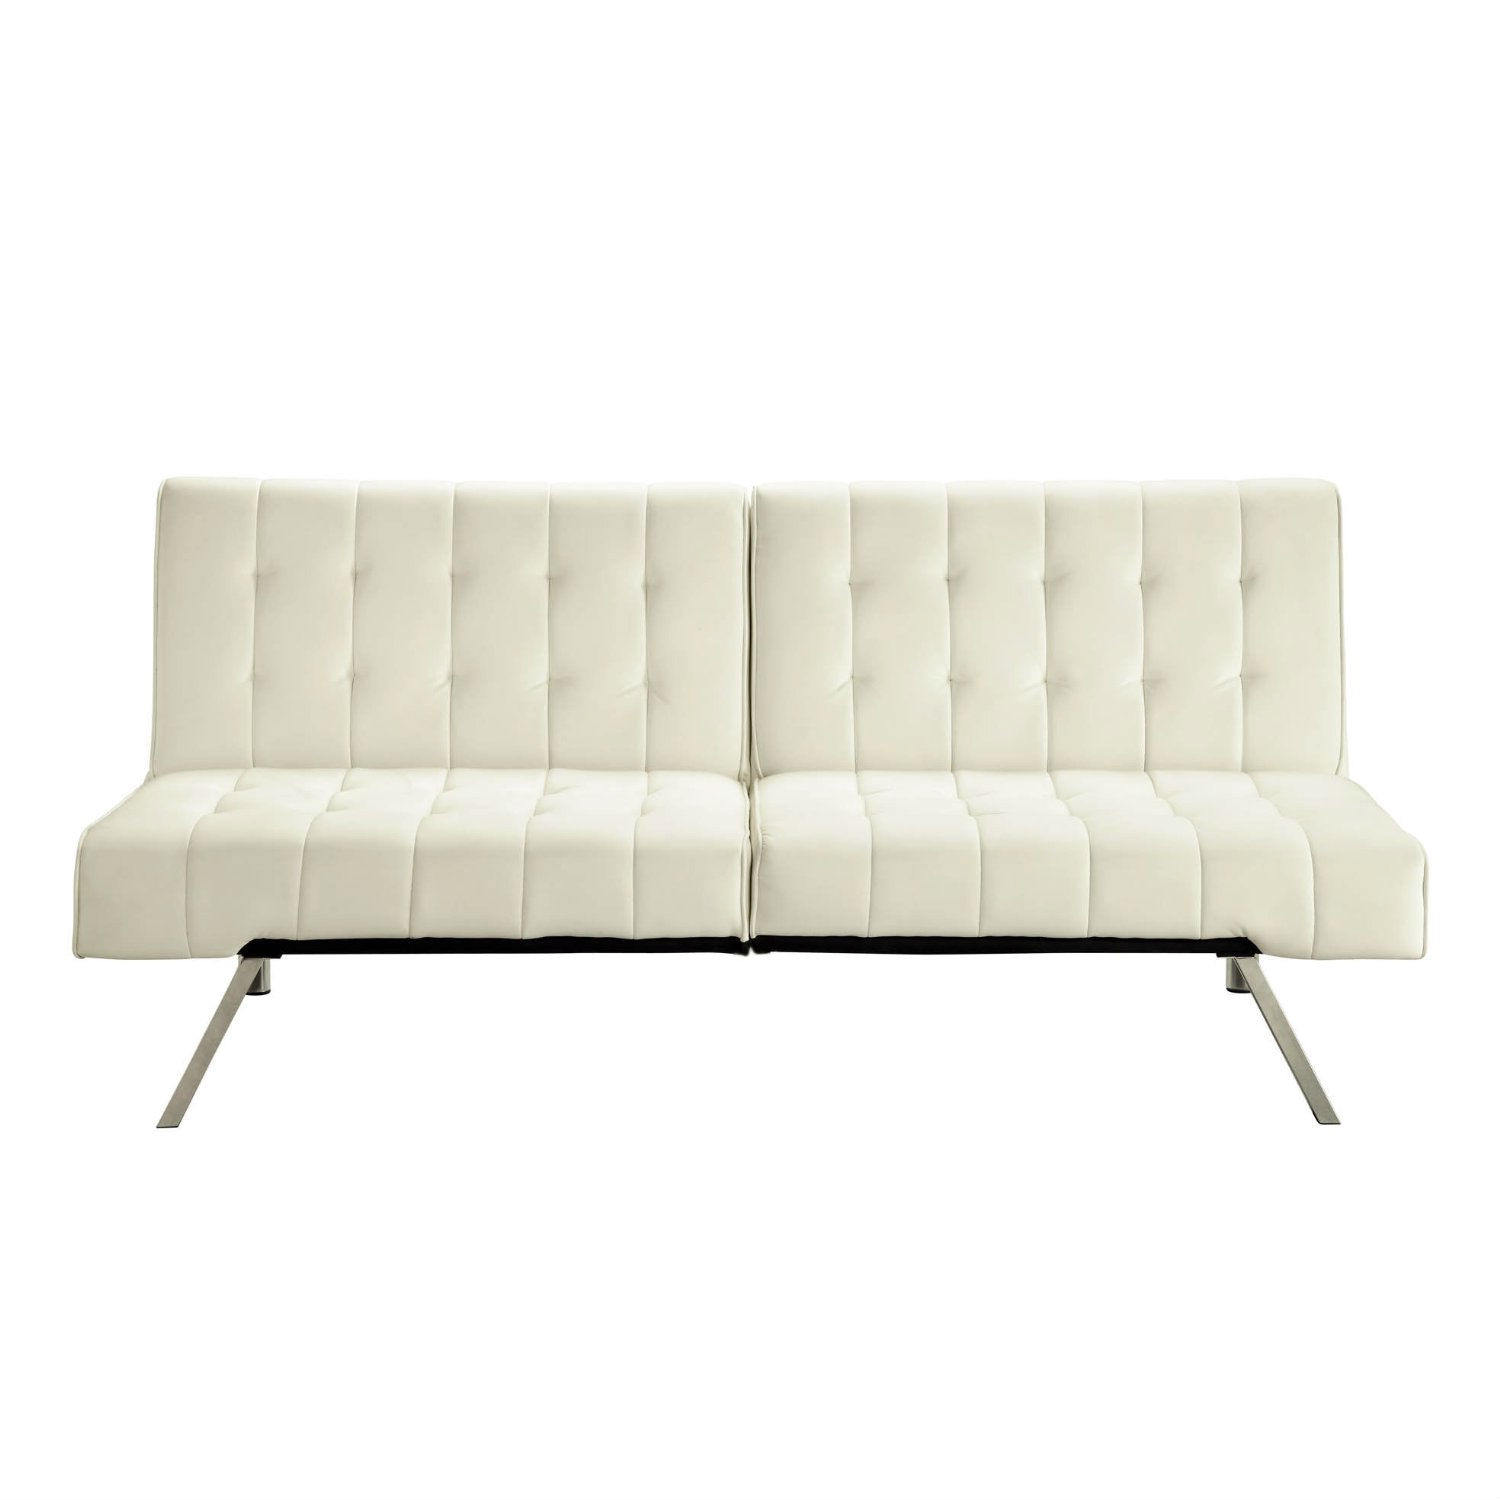 Split-back Modern Futon Style Sleeper Sofa Bed in Vanilla Faux ...